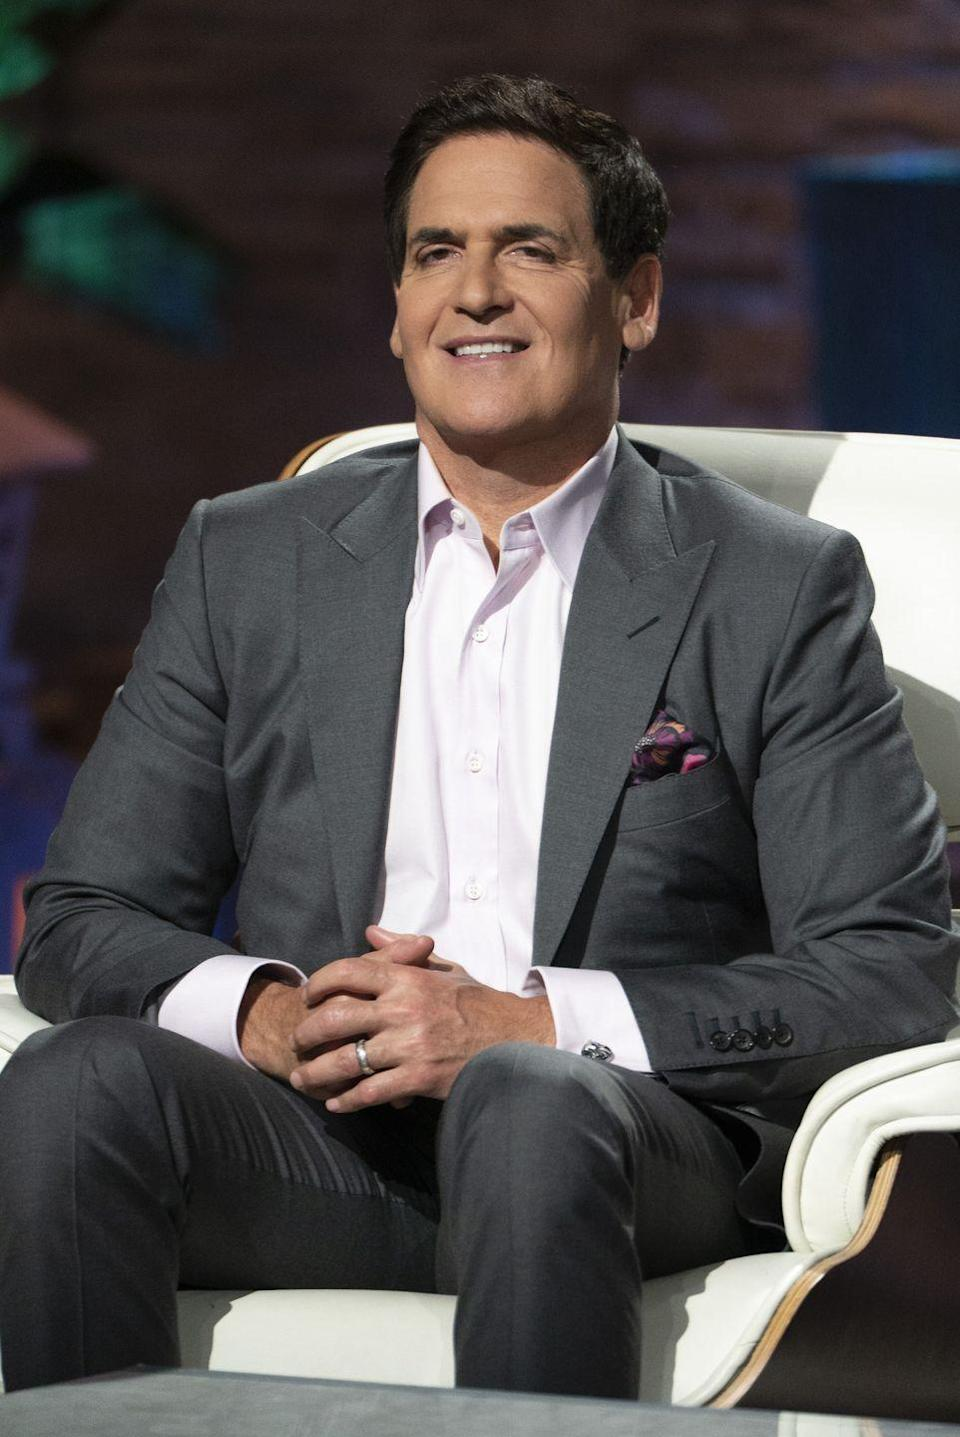 """<p>Businessman and <em>Shark Tank</em> investor, Mark Cuban, has spoken on several occasions about possibly running for president. """"We will see,"""" he told <em><a href=""""https://www.businessinsider.de/mark-cuban-for-president-maybe-2017-2?r=US&IR=T"""" rel=""""nofollow noopener"""" target=""""_blank"""" data-ylk=""""slk:Business Insider"""" class=""""link rapid-noclick-resp"""">Business Insider</a></em>. He also dropped hints to <em>CNBC</em>:<em> """"</em><a href=""""http://www.cnbc.com/2017/03/12/mark-cuban-on-running-for-president-i-wouldnt-say-never.html"""" rel=""""nofollow noopener"""" target=""""_blank"""" data-ylk=""""slk:I wouldn't say never"""" class=""""link rapid-noclick-resp"""">I wouldn't say never</a>, but it's not my lifelong dream. It depends on how things turn out."""" Cuban is an outspoken Democrat and <a href=""""https://www.cnbc.com/video/2019/07/12/billionaire-mark-cuban-on-trump-and-solving-problems.html"""" rel=""""nofollow noopener"""" target=""""_blank"""" data-ylk=""""slk:consistent Trump opposer"""" class=""""link rapid-noclick-resp"""">consistent Trump opposer</a>. </p>"""